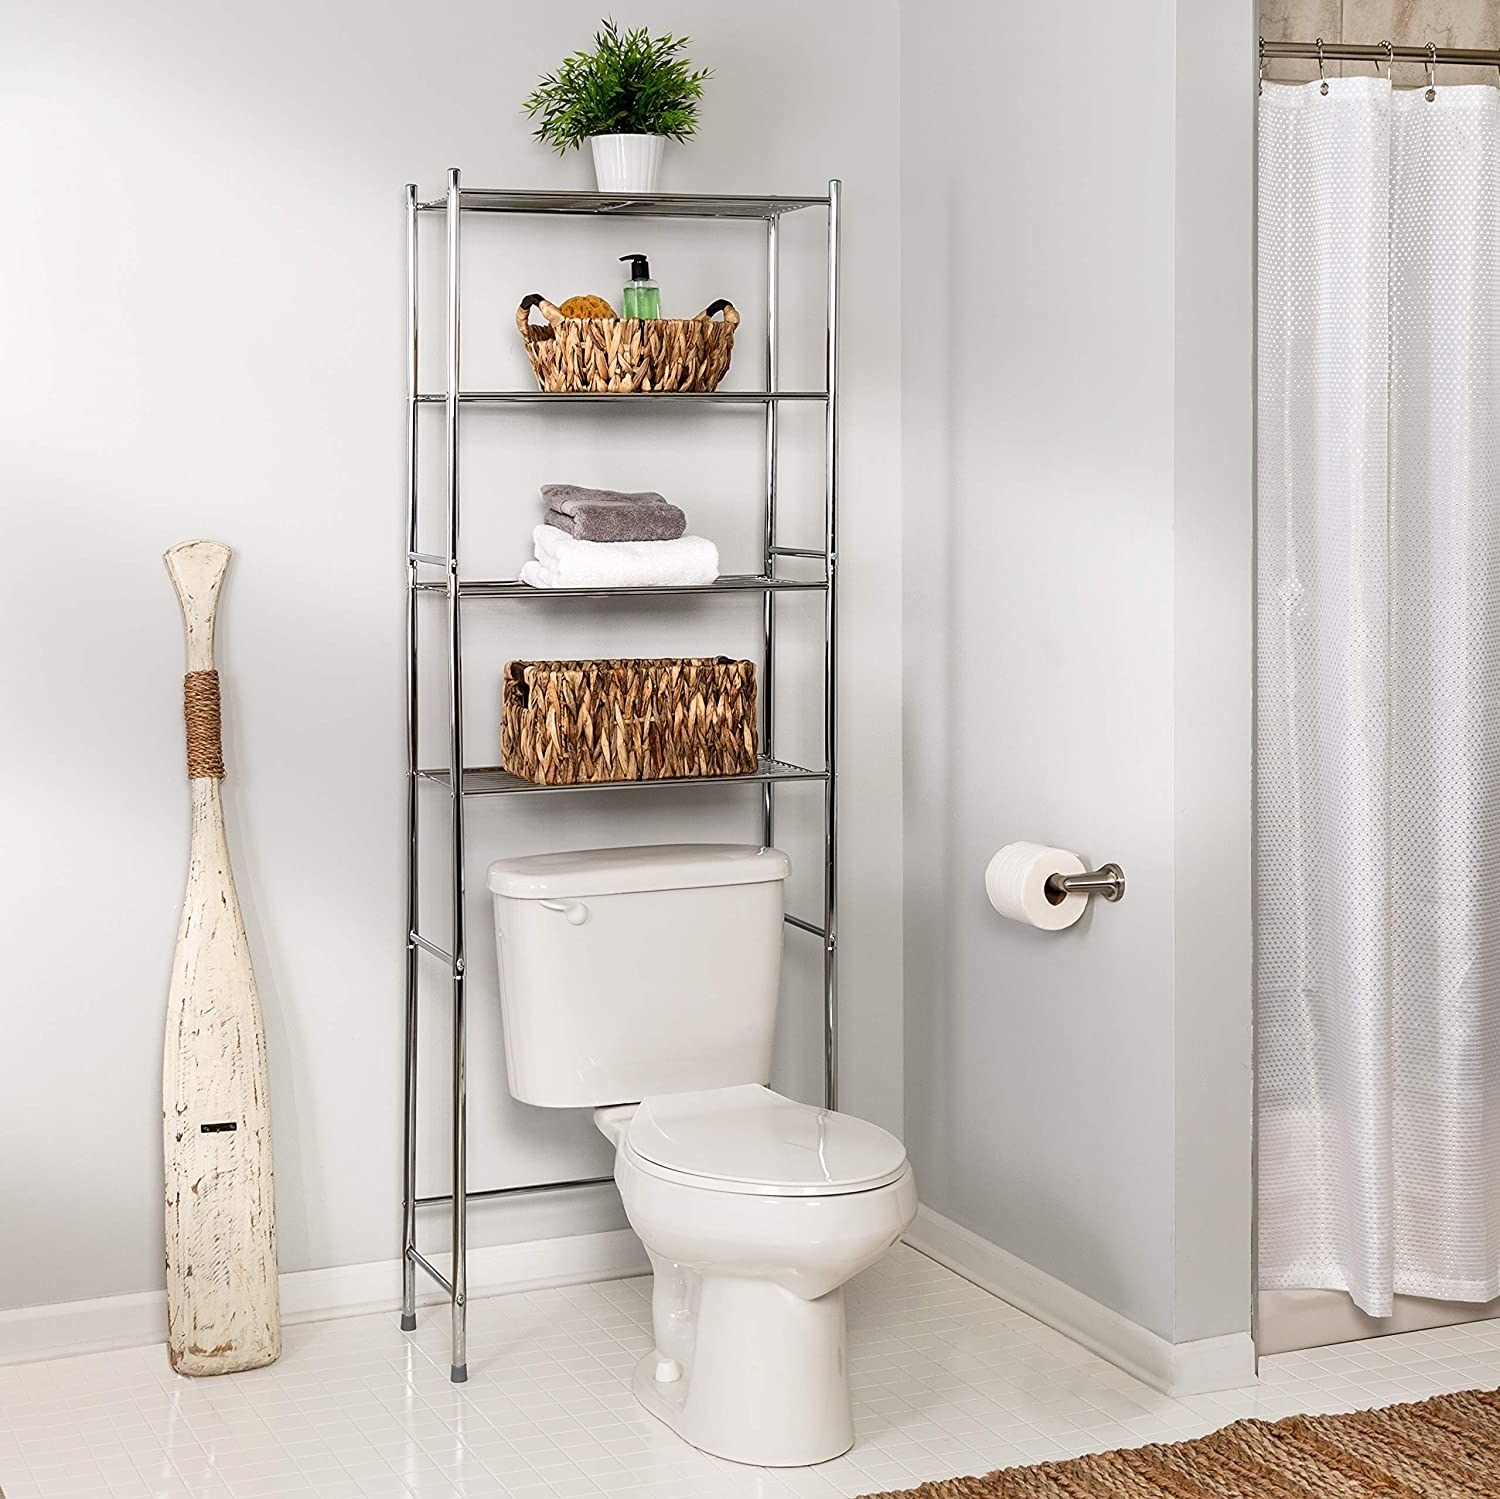 A multi-tiered shelf placed over a toilet The shelves are filled with beauty products aand toilet paper